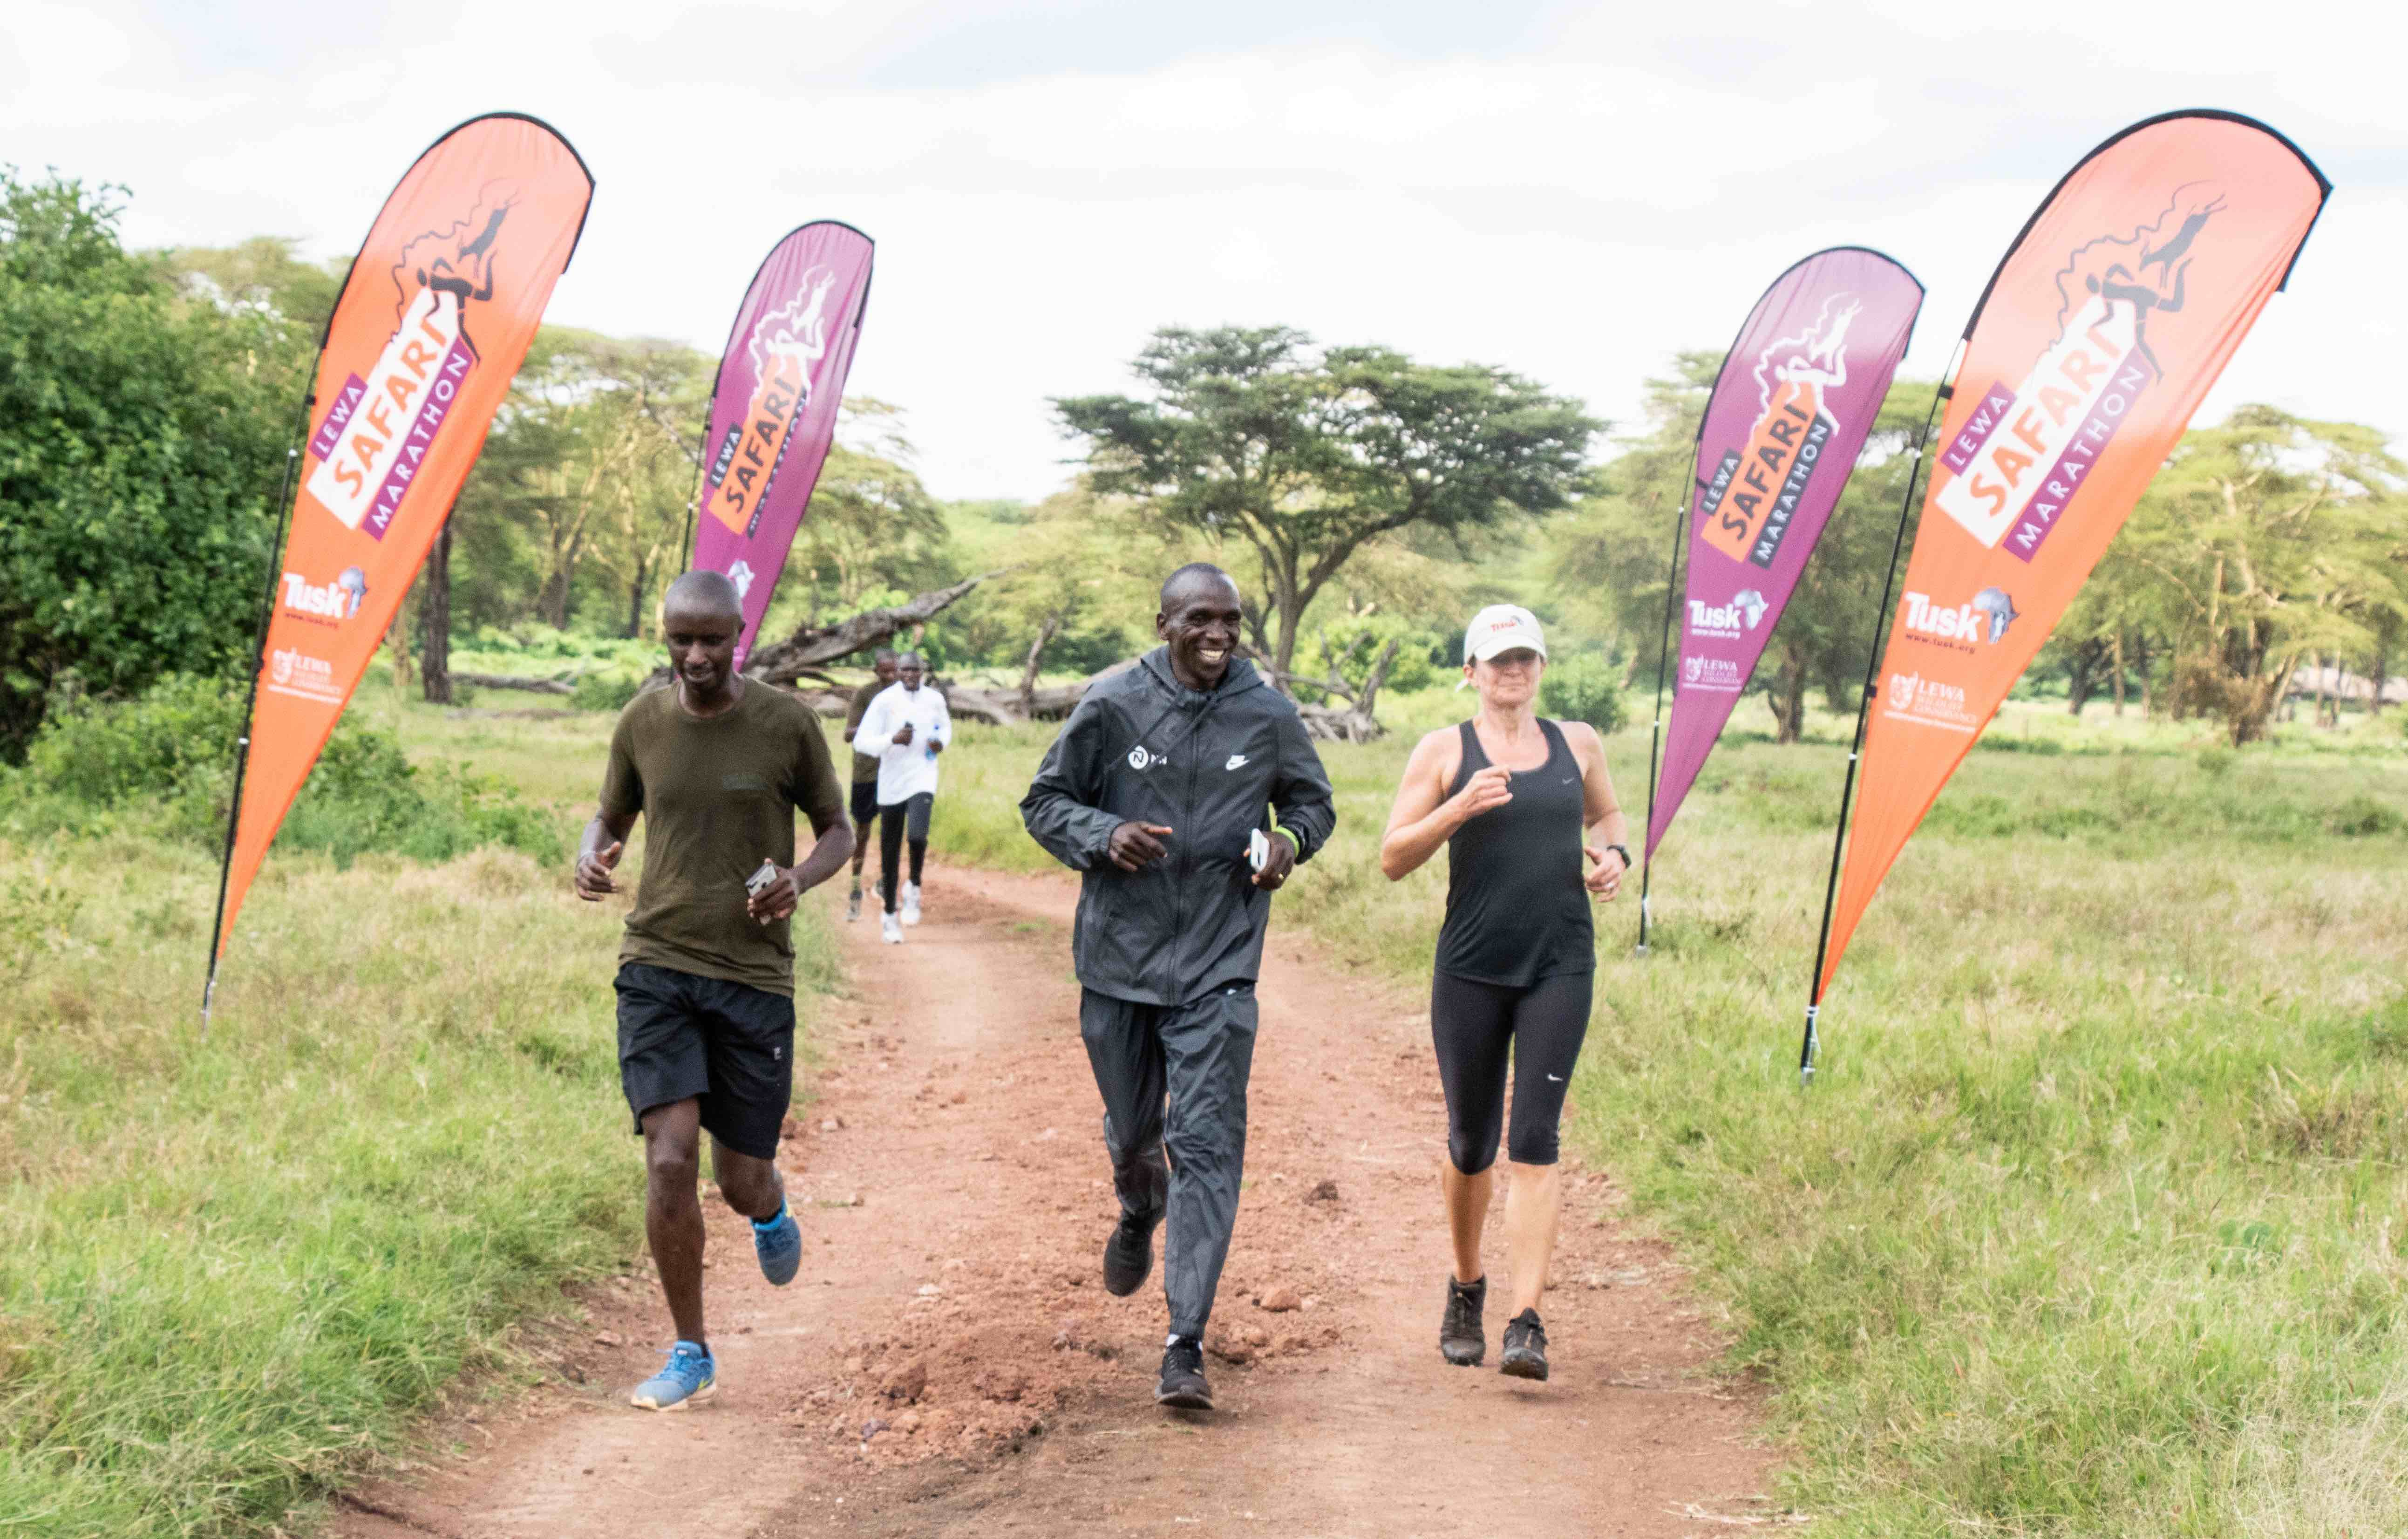 Eliud Kipchoge has a message for runners around the world